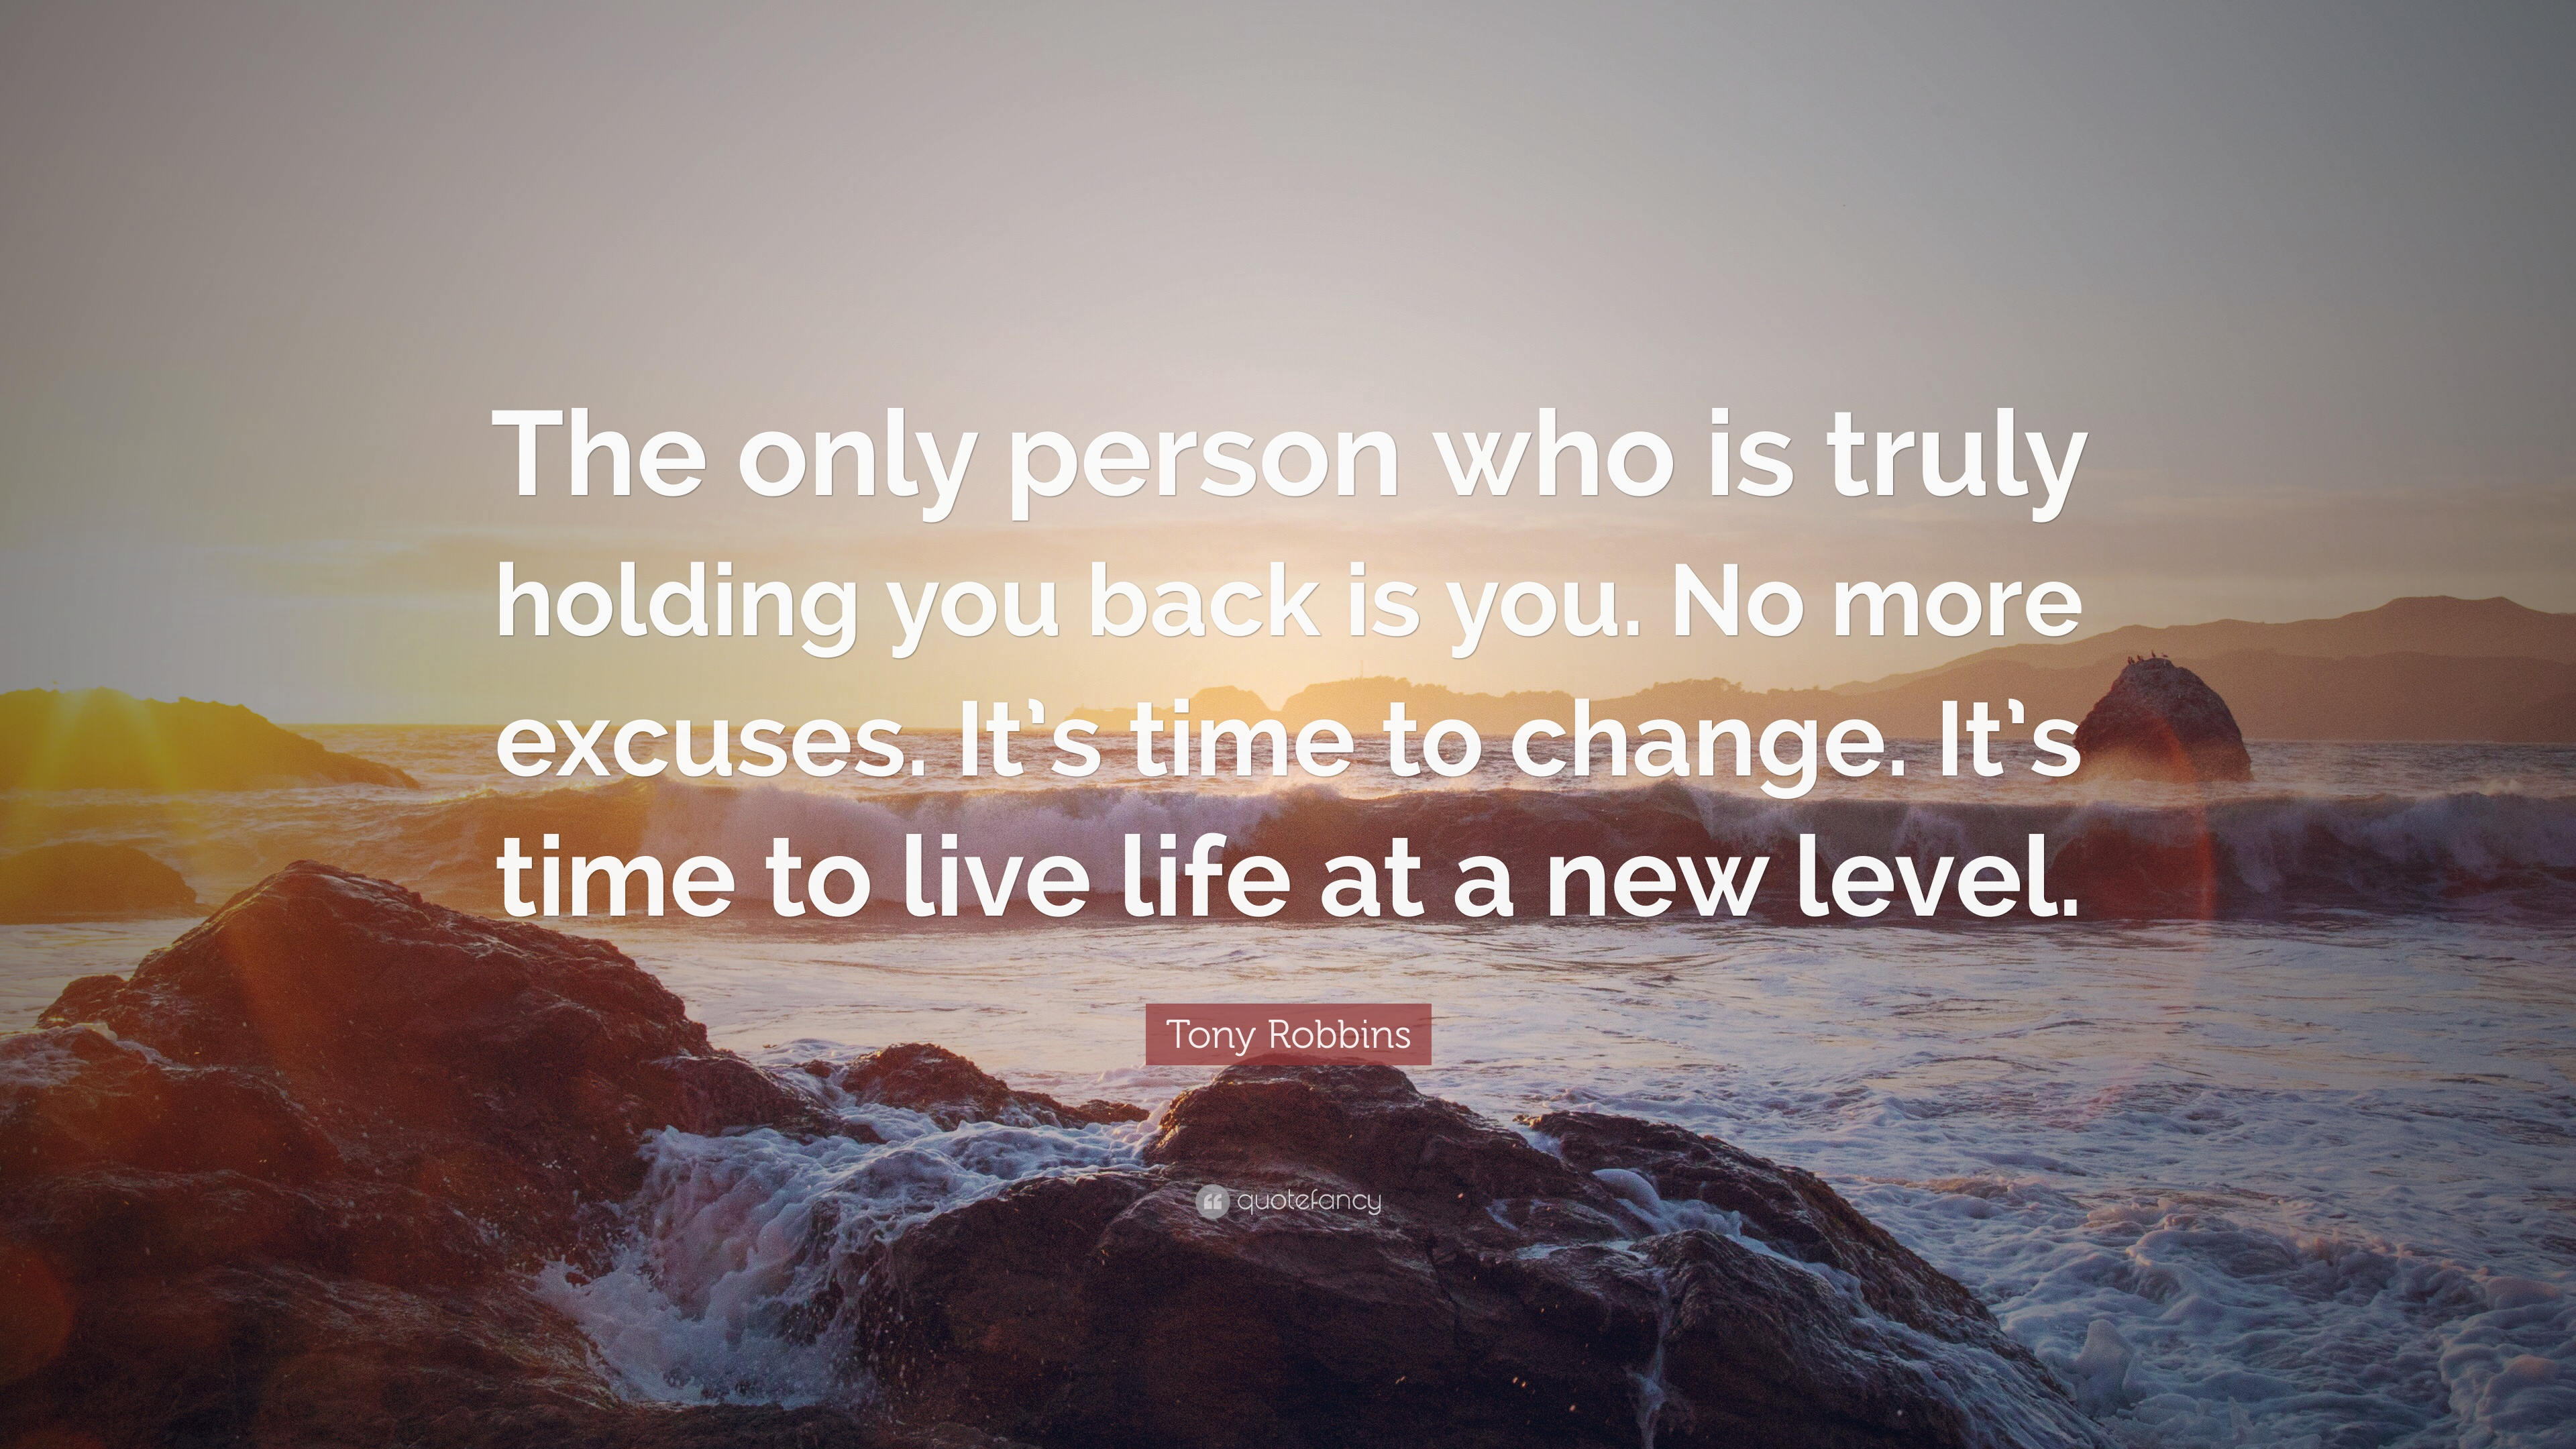 Tony Robbins Quote: U201cThe Only Person Who Is Truly Holding You Back Is You